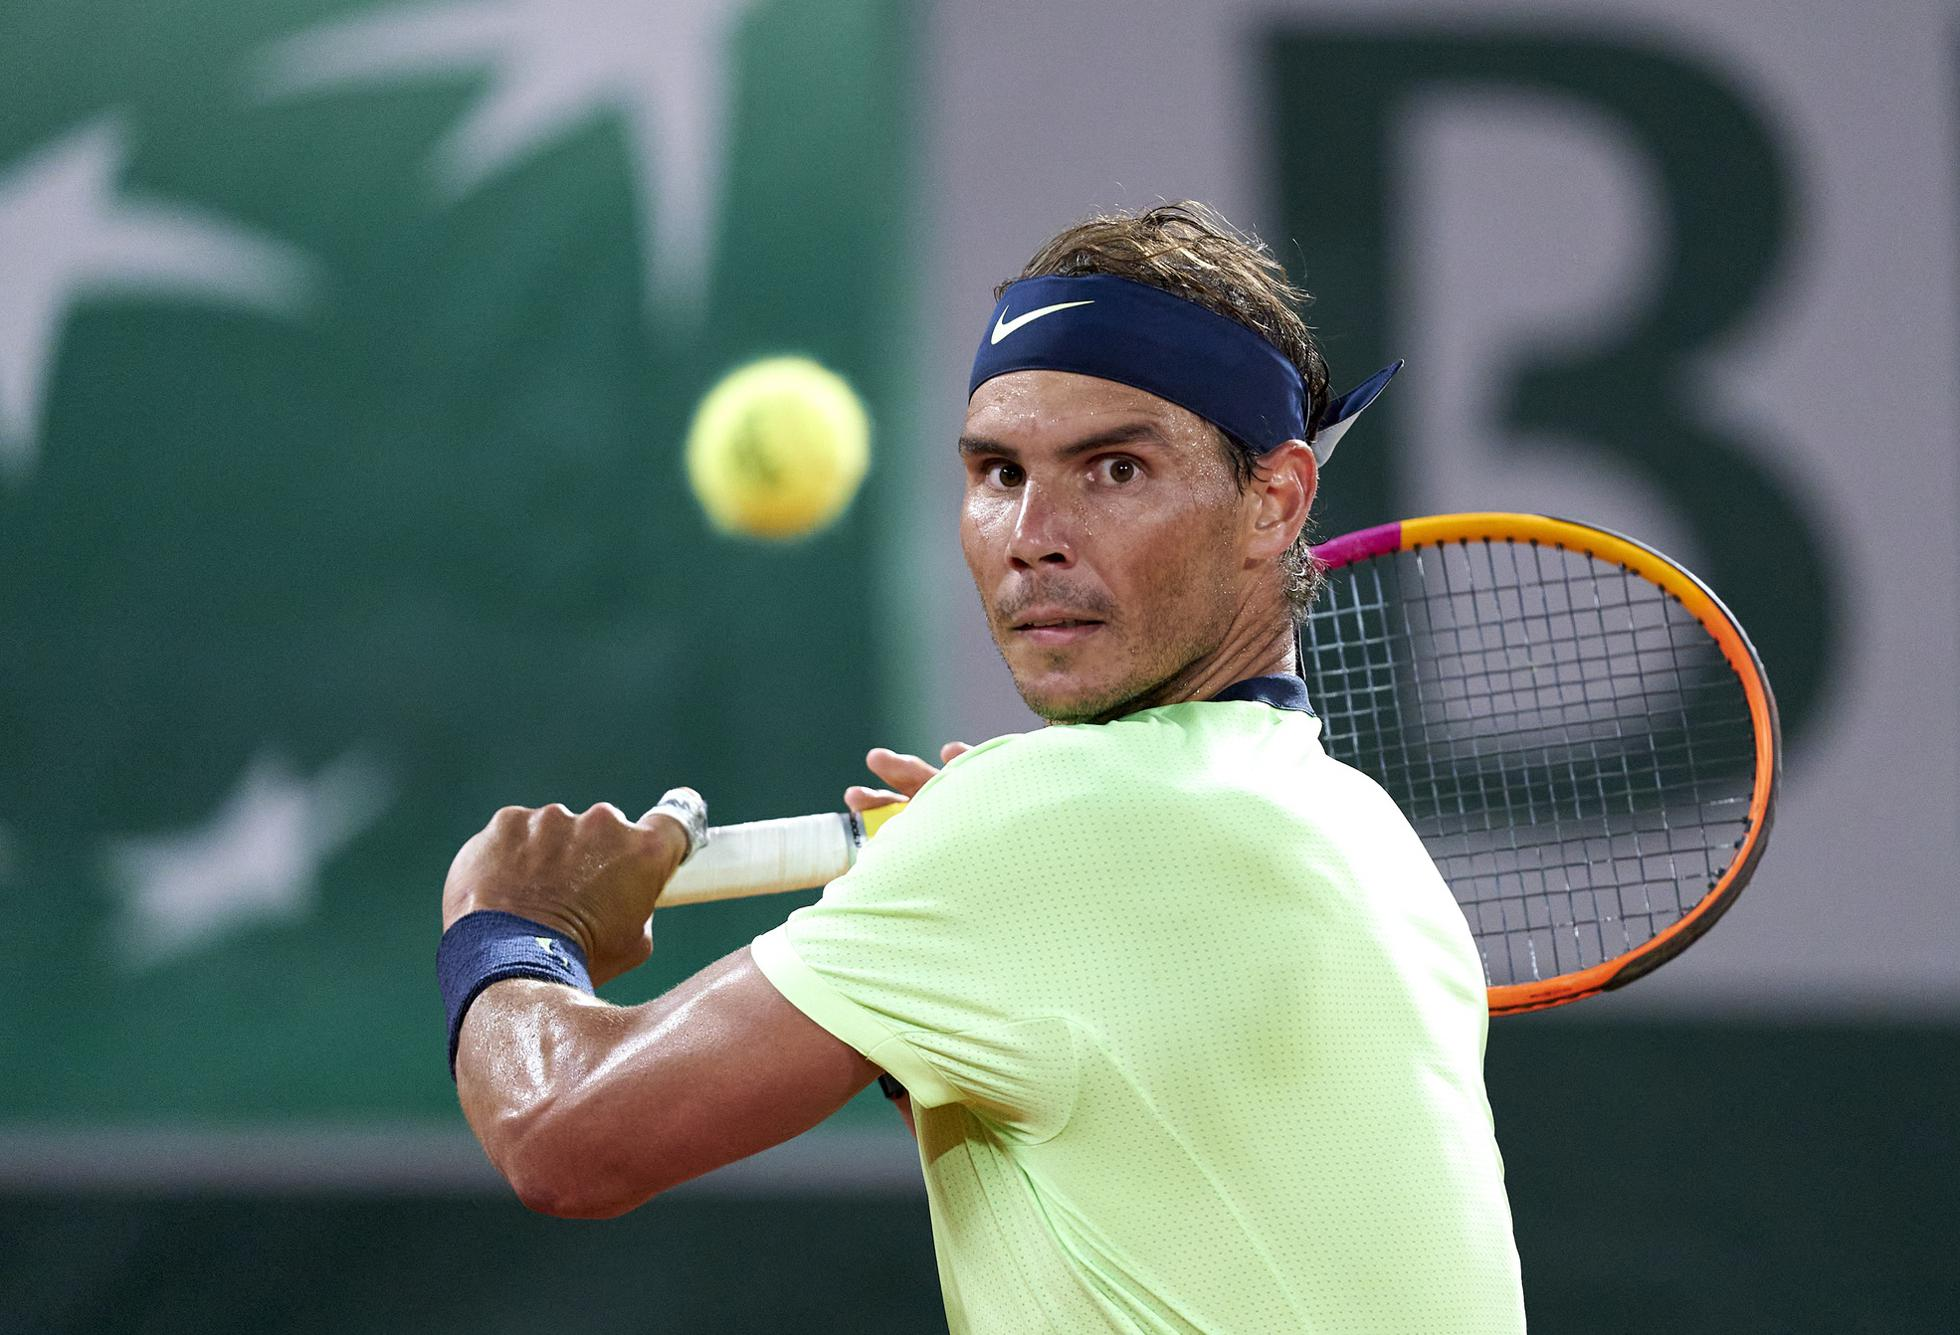 Rafael Nadal during his French Open semifinal loss to Novak Djokovic on Friday.